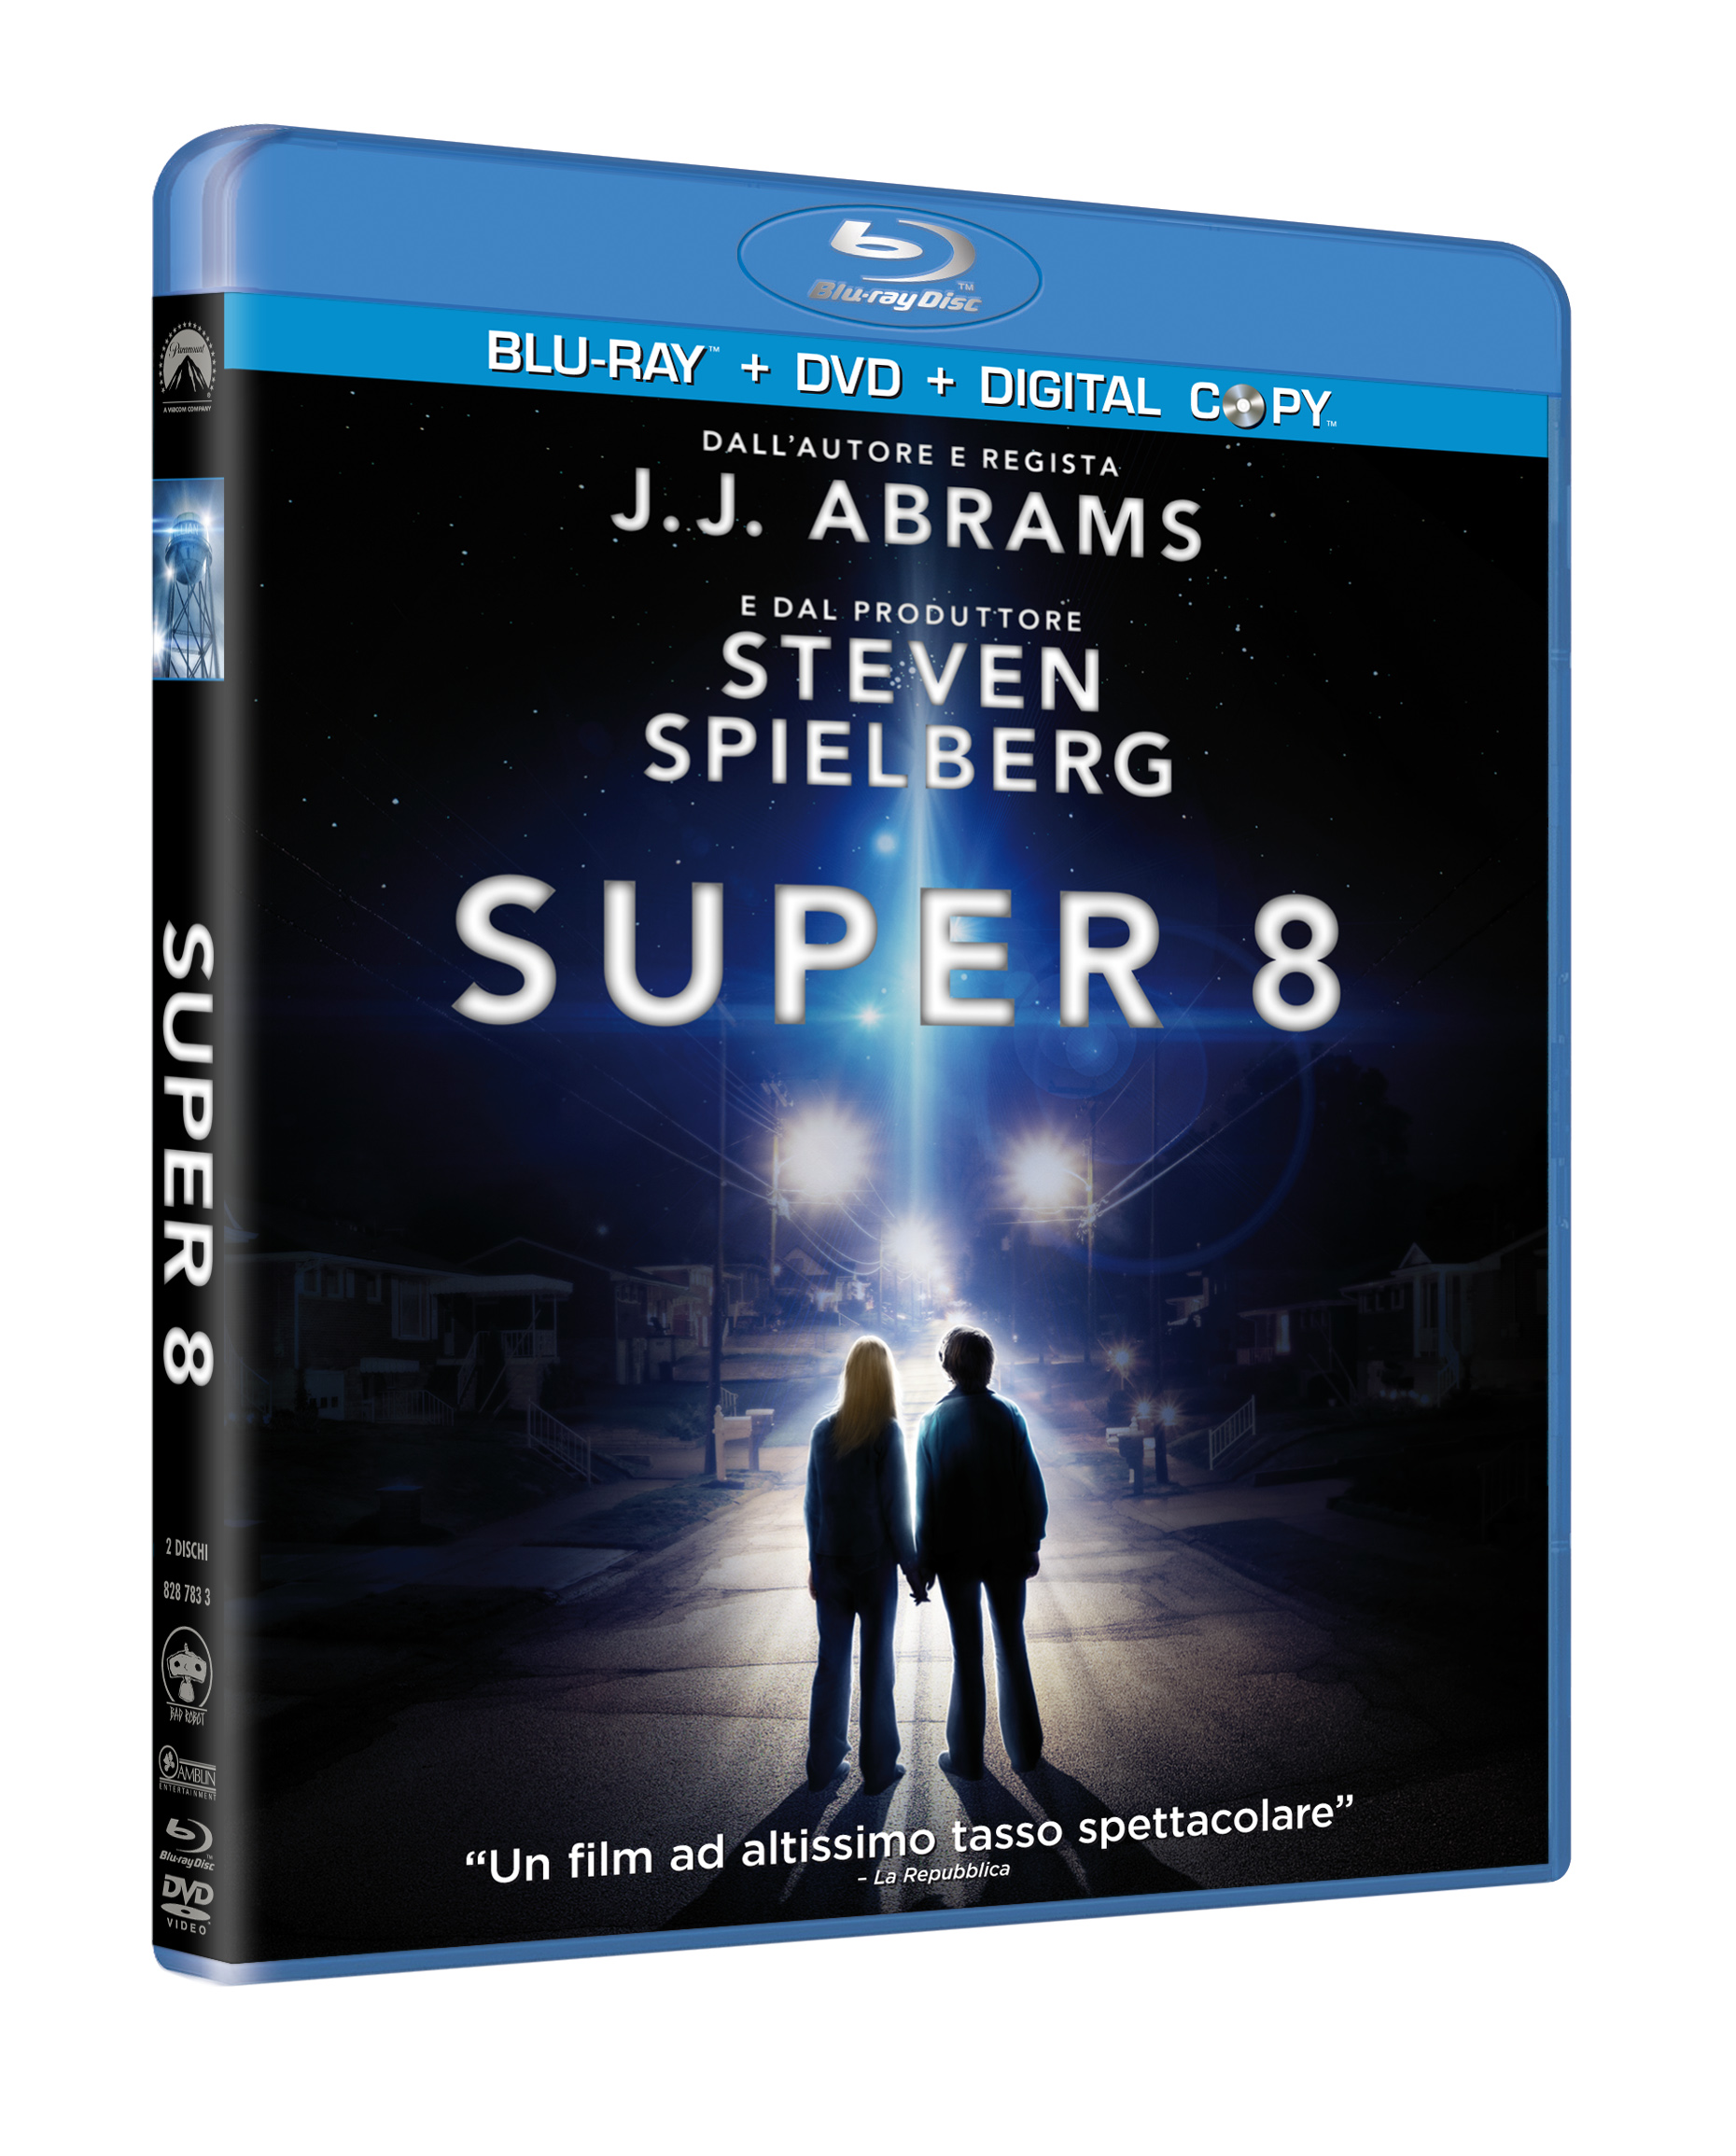 Super 8 (2011) BluRay Rip 1080p x264 MKV AC3 ITA ENG Subs